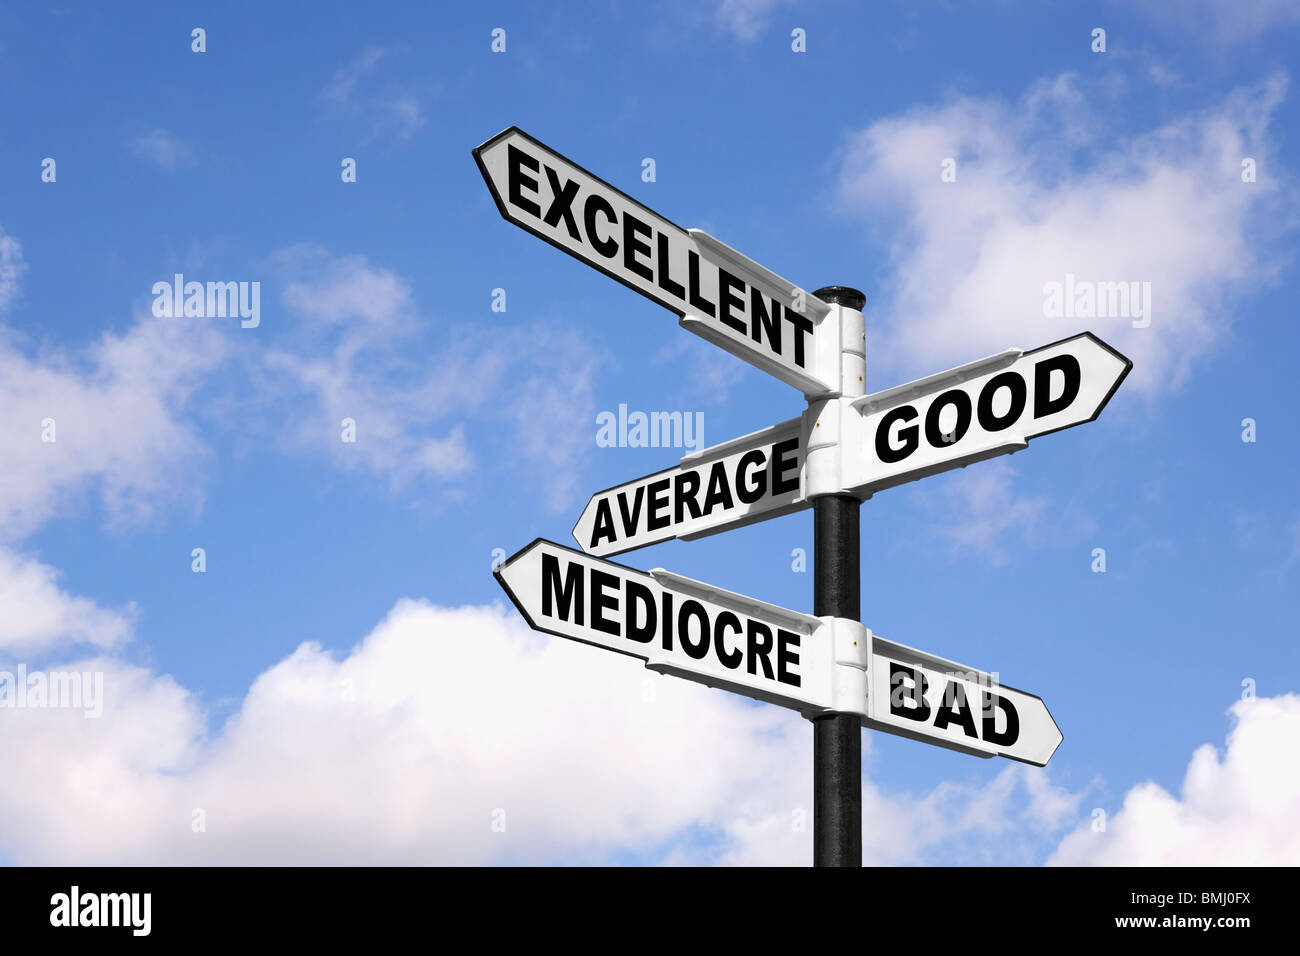 Signpost with the words Excellent, Good, Average, Mediocre and Bad against a blue cloudy sky. - Stock Image